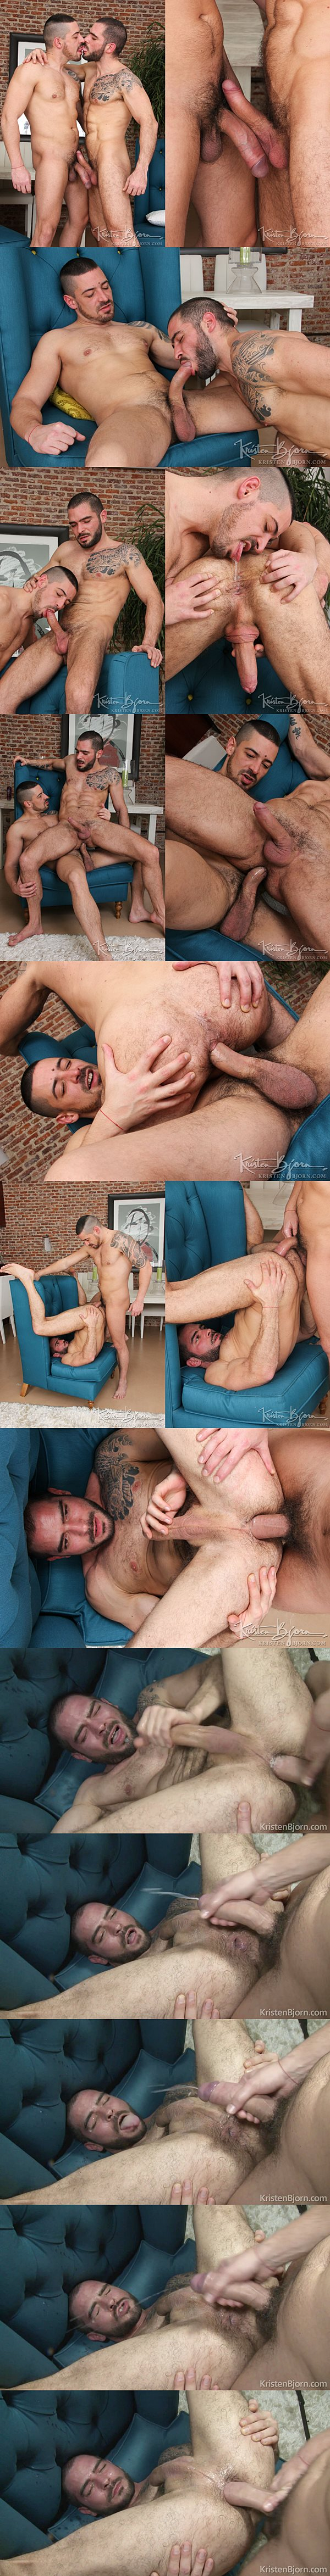 Karl Lion barebacks his real lover Cody Banx before he breeds Cody's worked hole in Casting Couch #342 at kristenbjorn 02